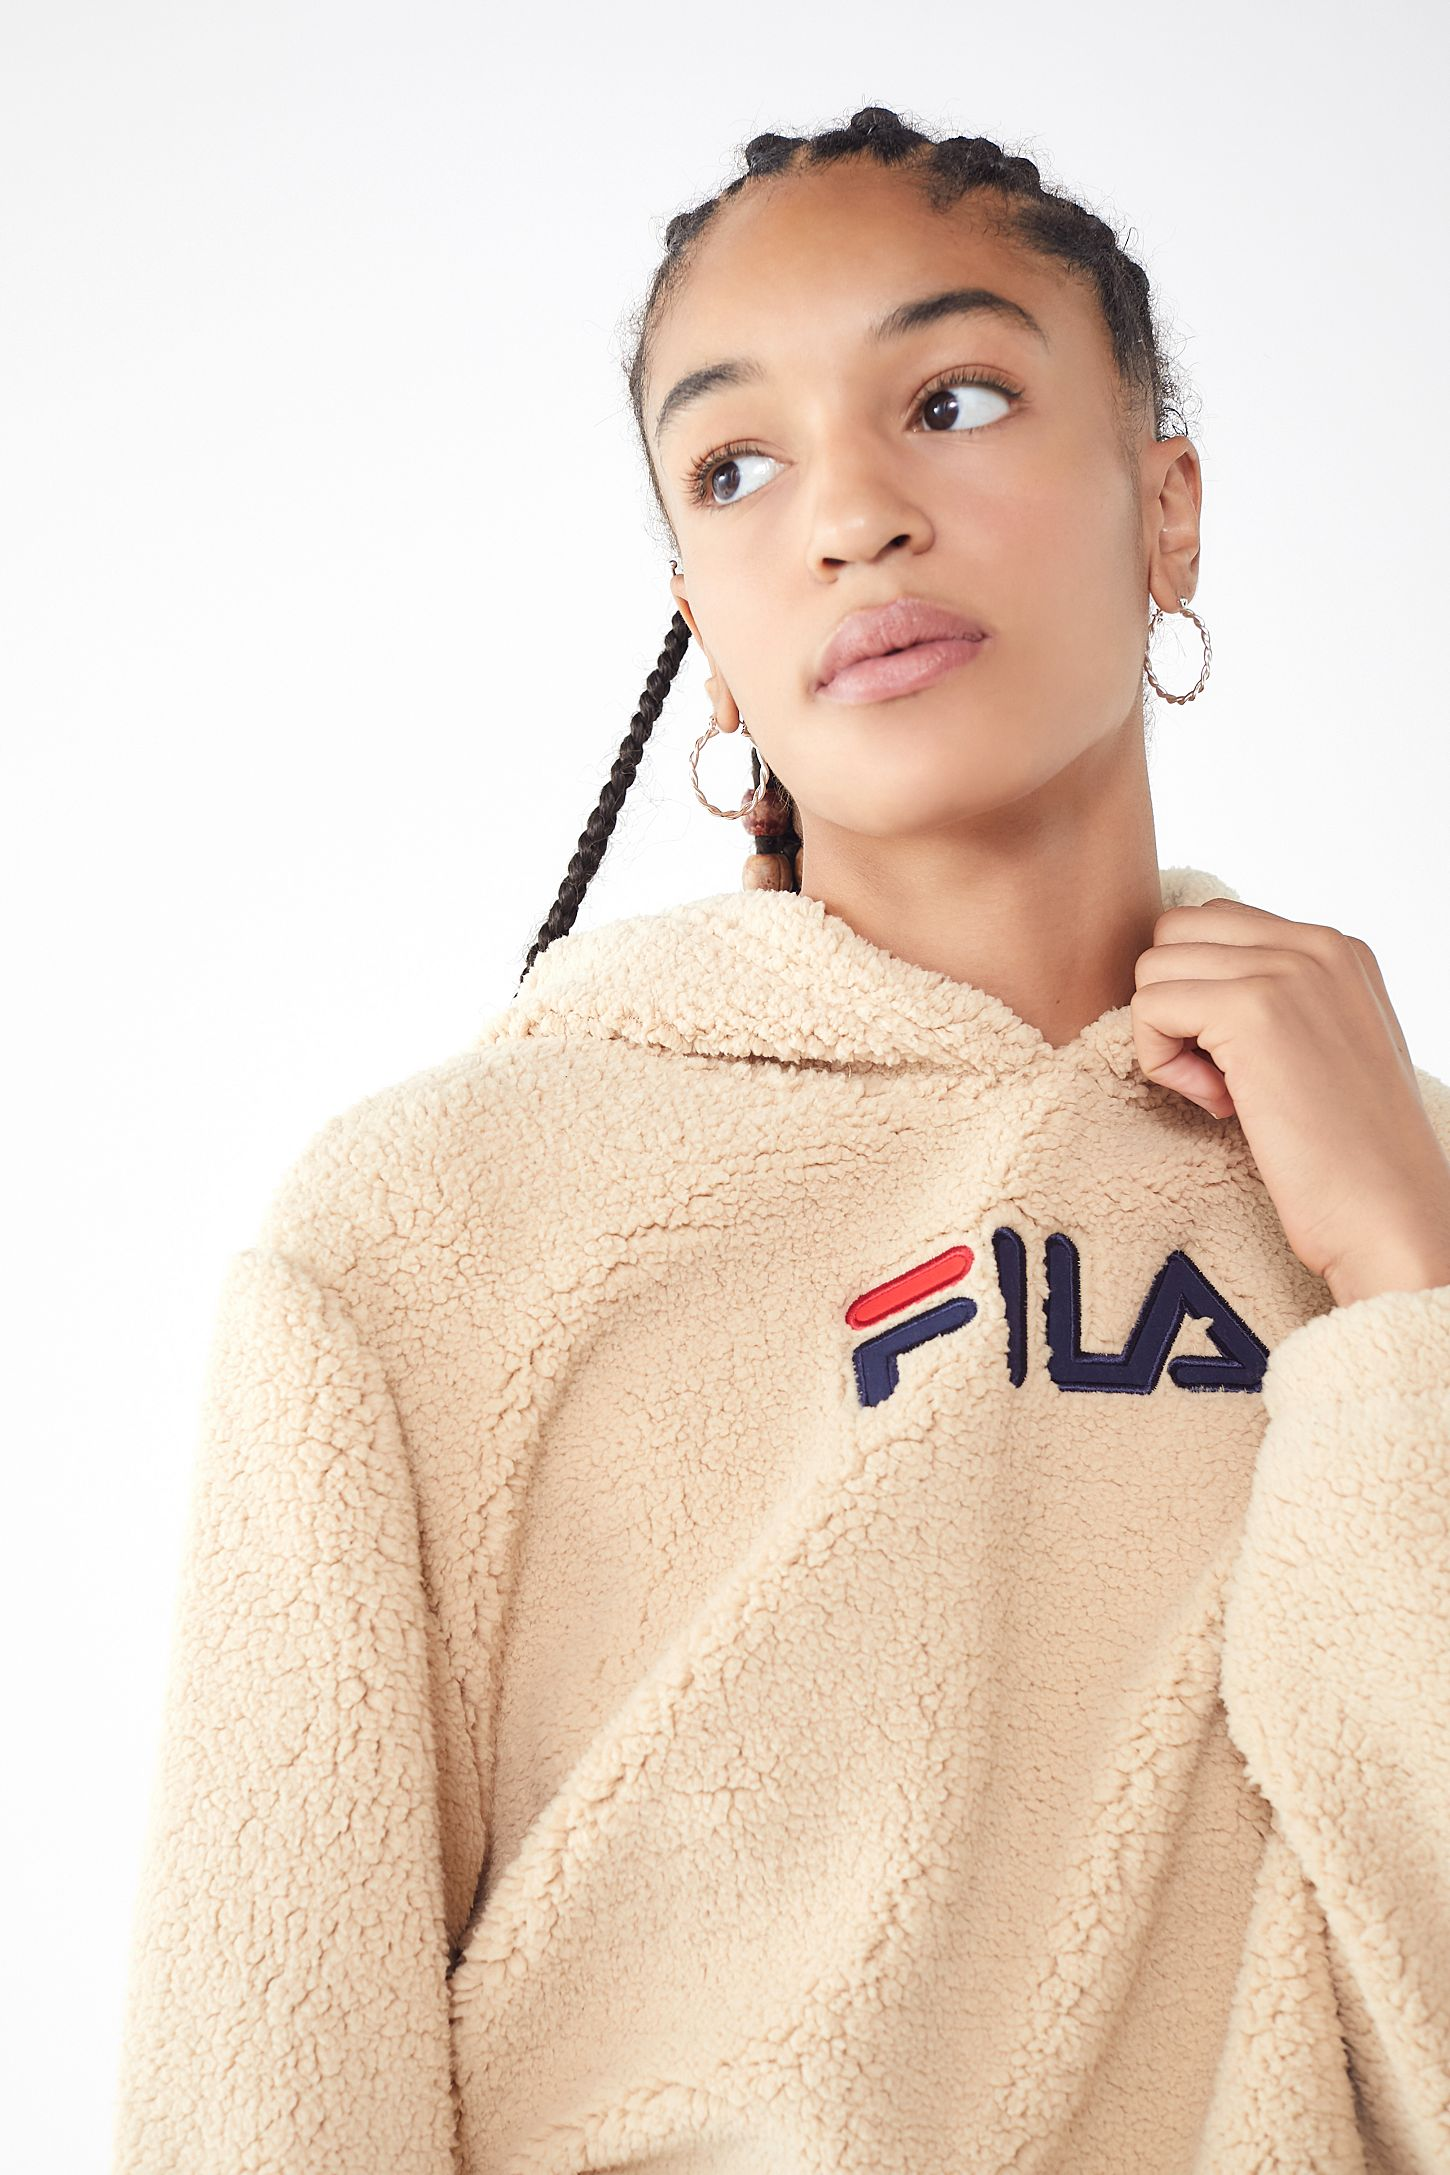 FILA UO Exclusive Teddy Hoodie Sweatshirt